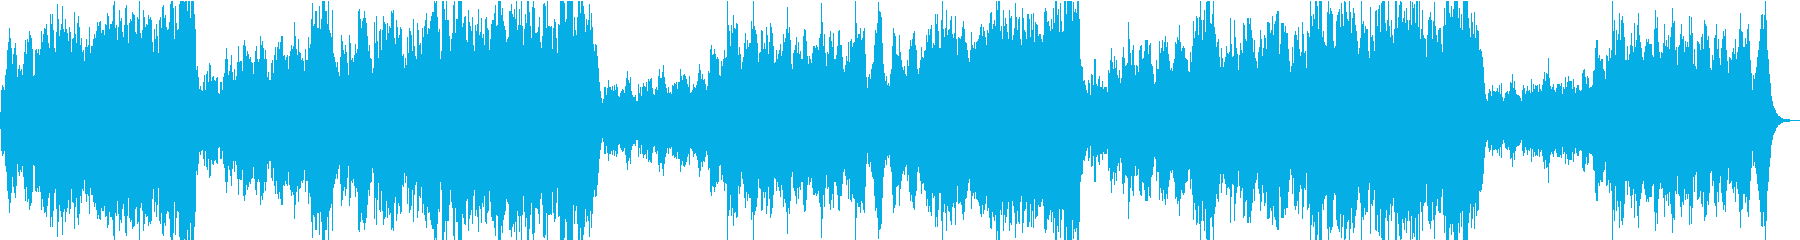 Fanfare + Hollywood-style BGM's reproduced waveform